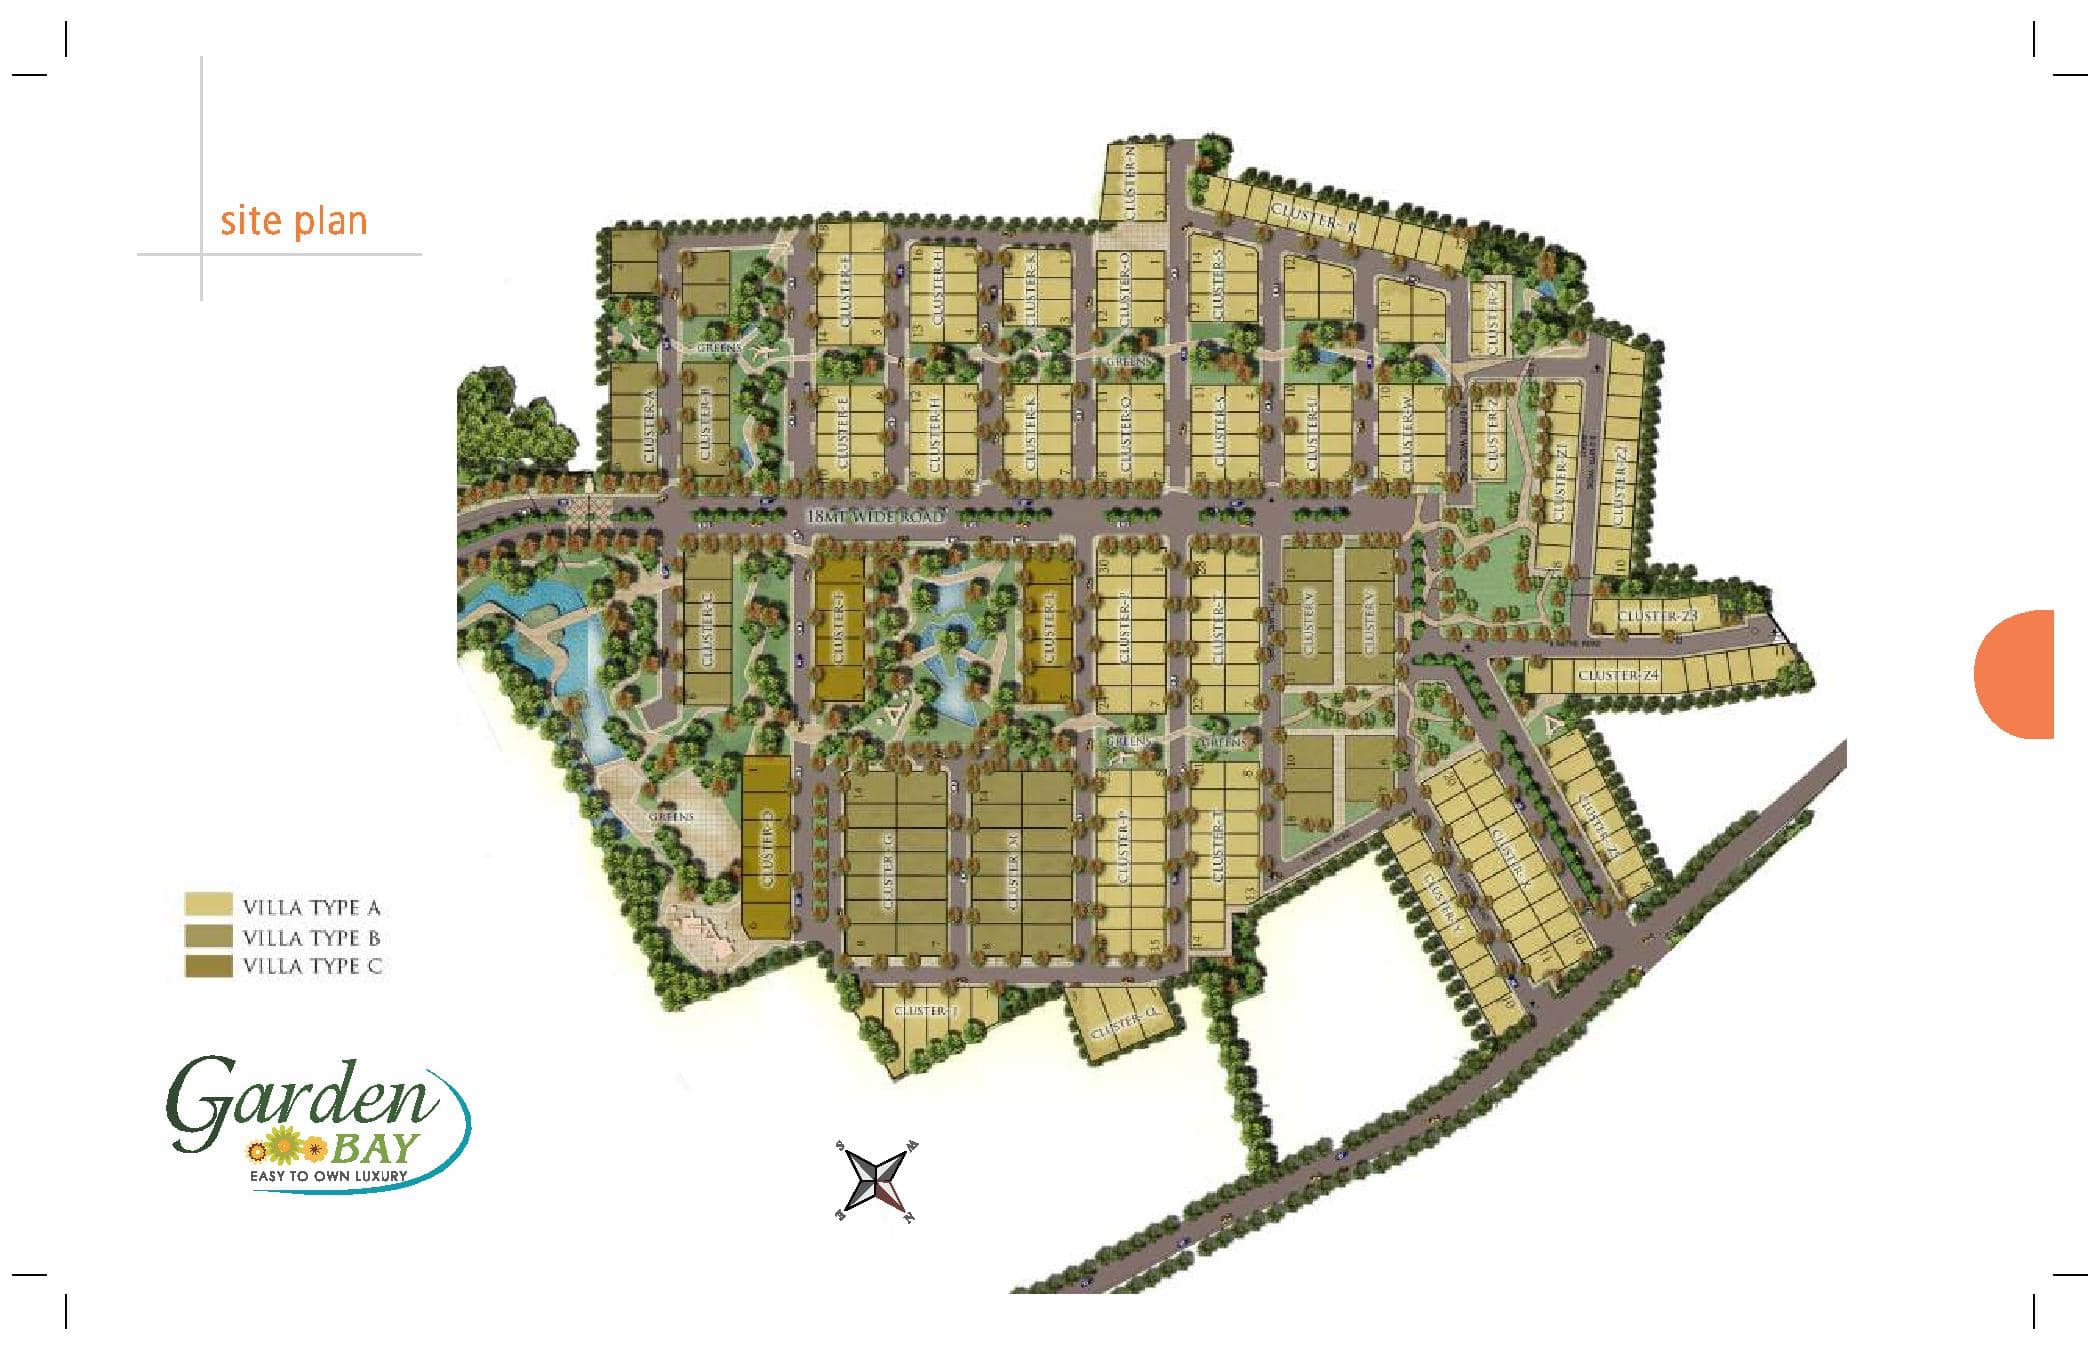 Garden Bay Site Layout Plan